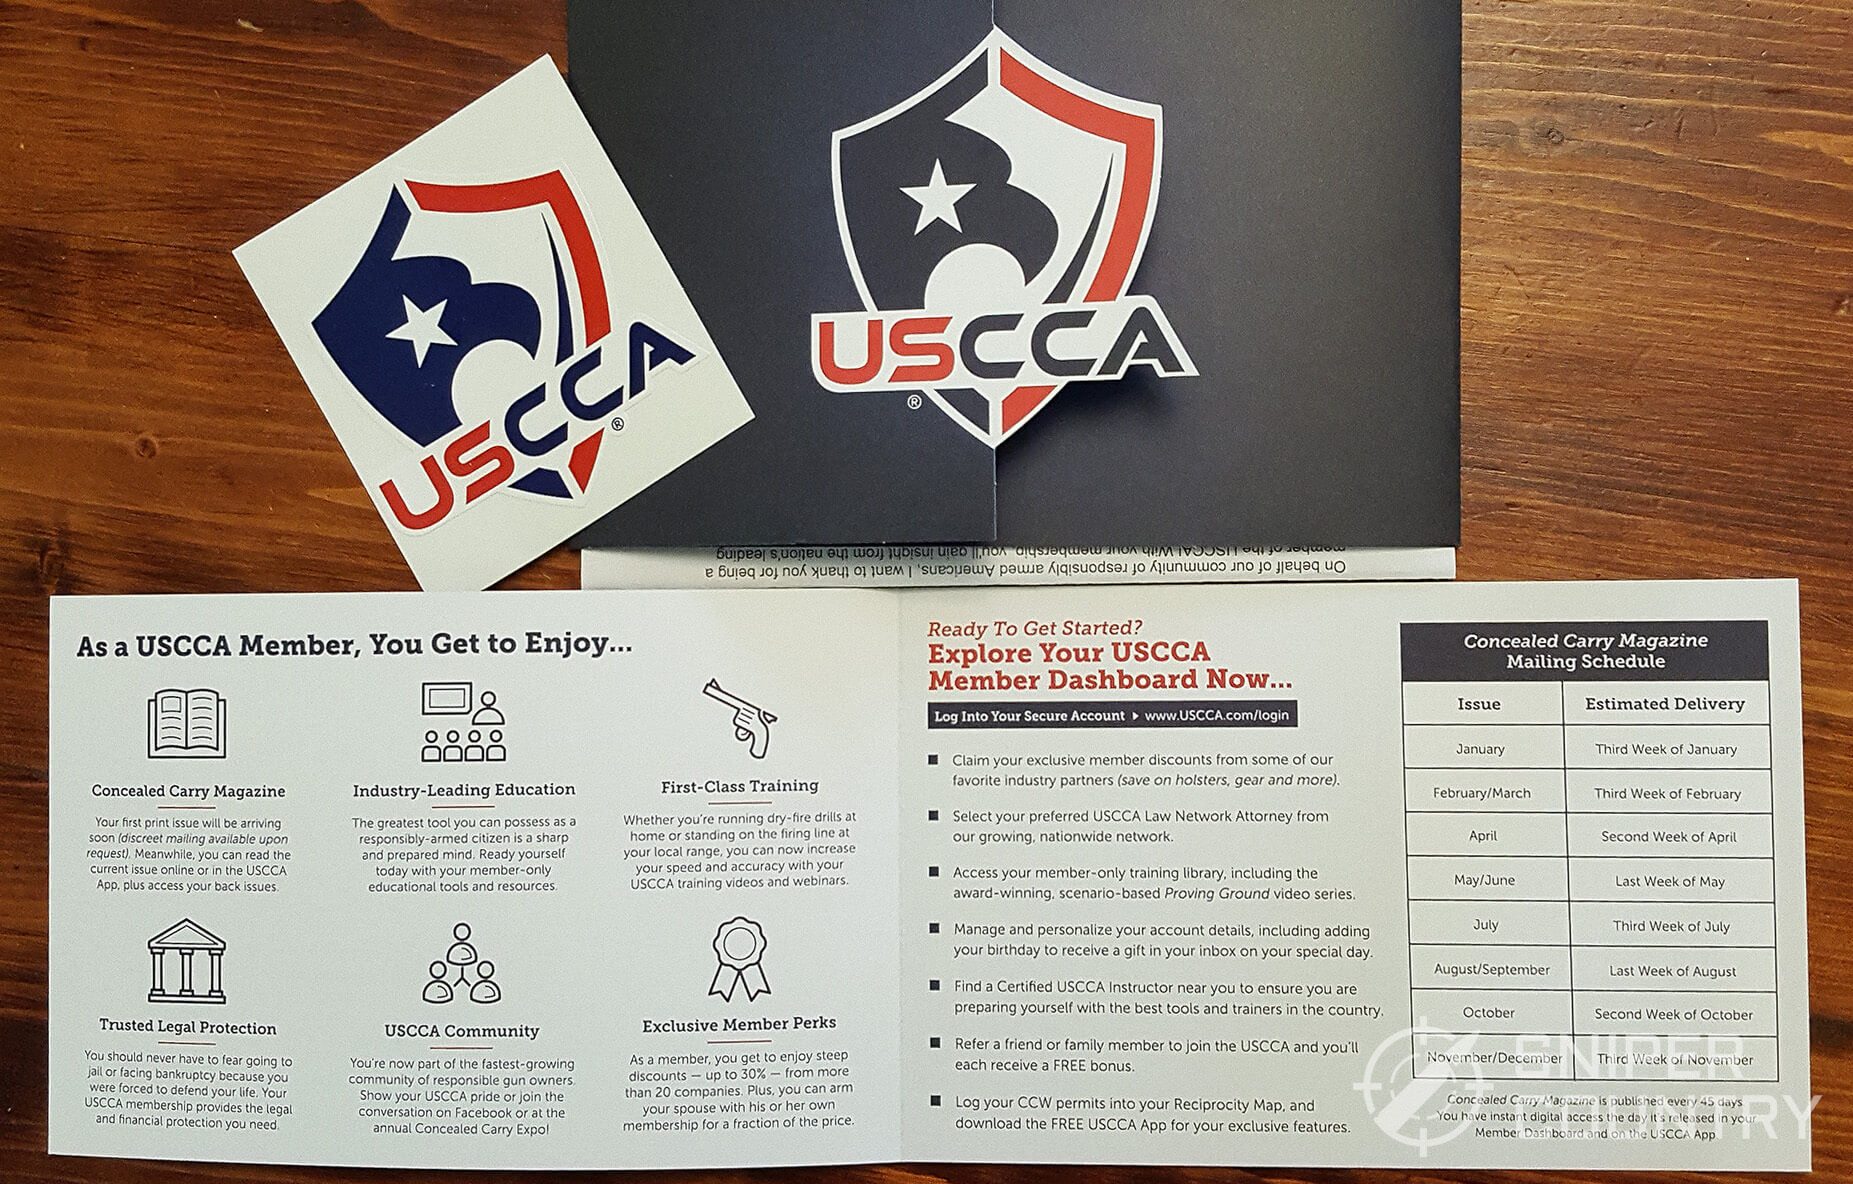 USCCA Sign Up Materials